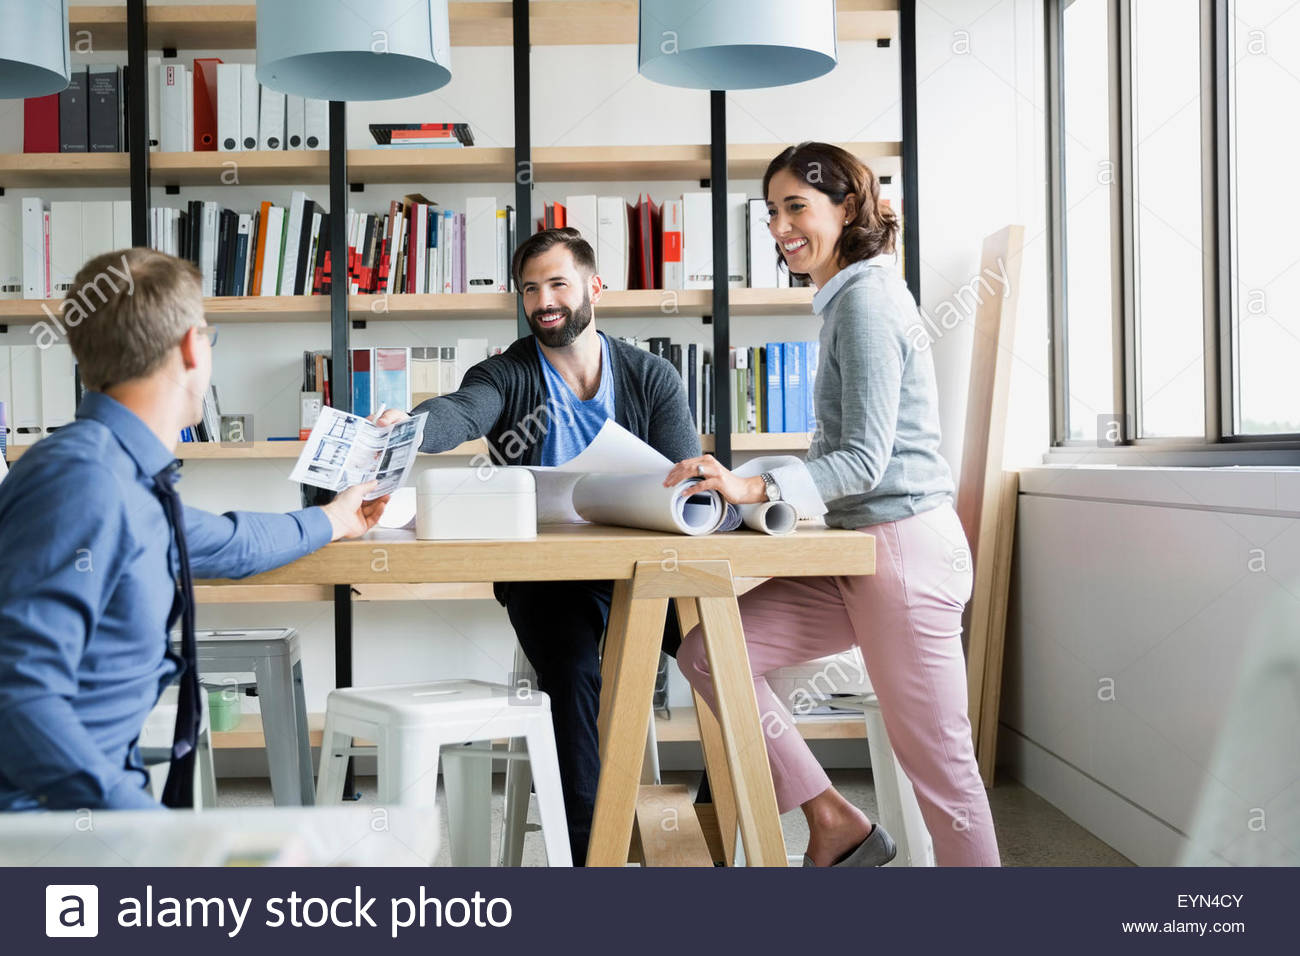 Architects reviewing proofs and blueprints in office - Stock Image